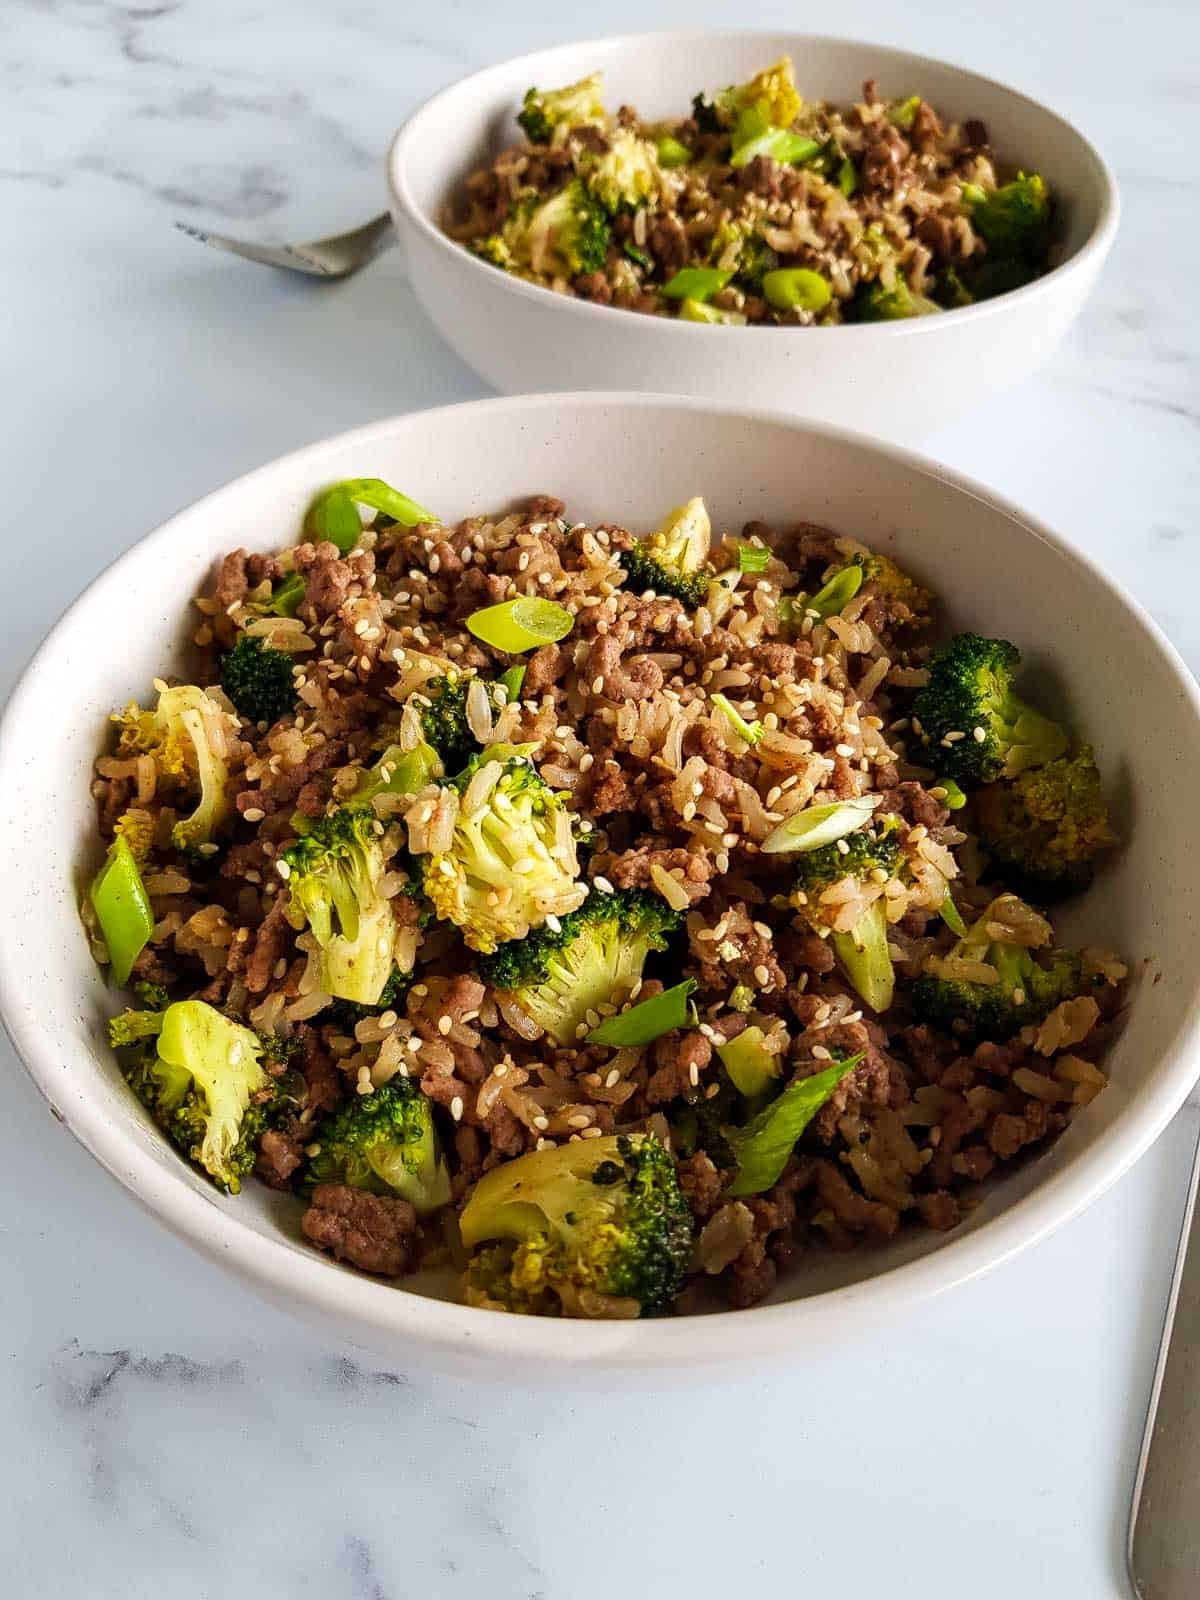 A bowl of broccoli, rice and ground beef with a fork next to it.